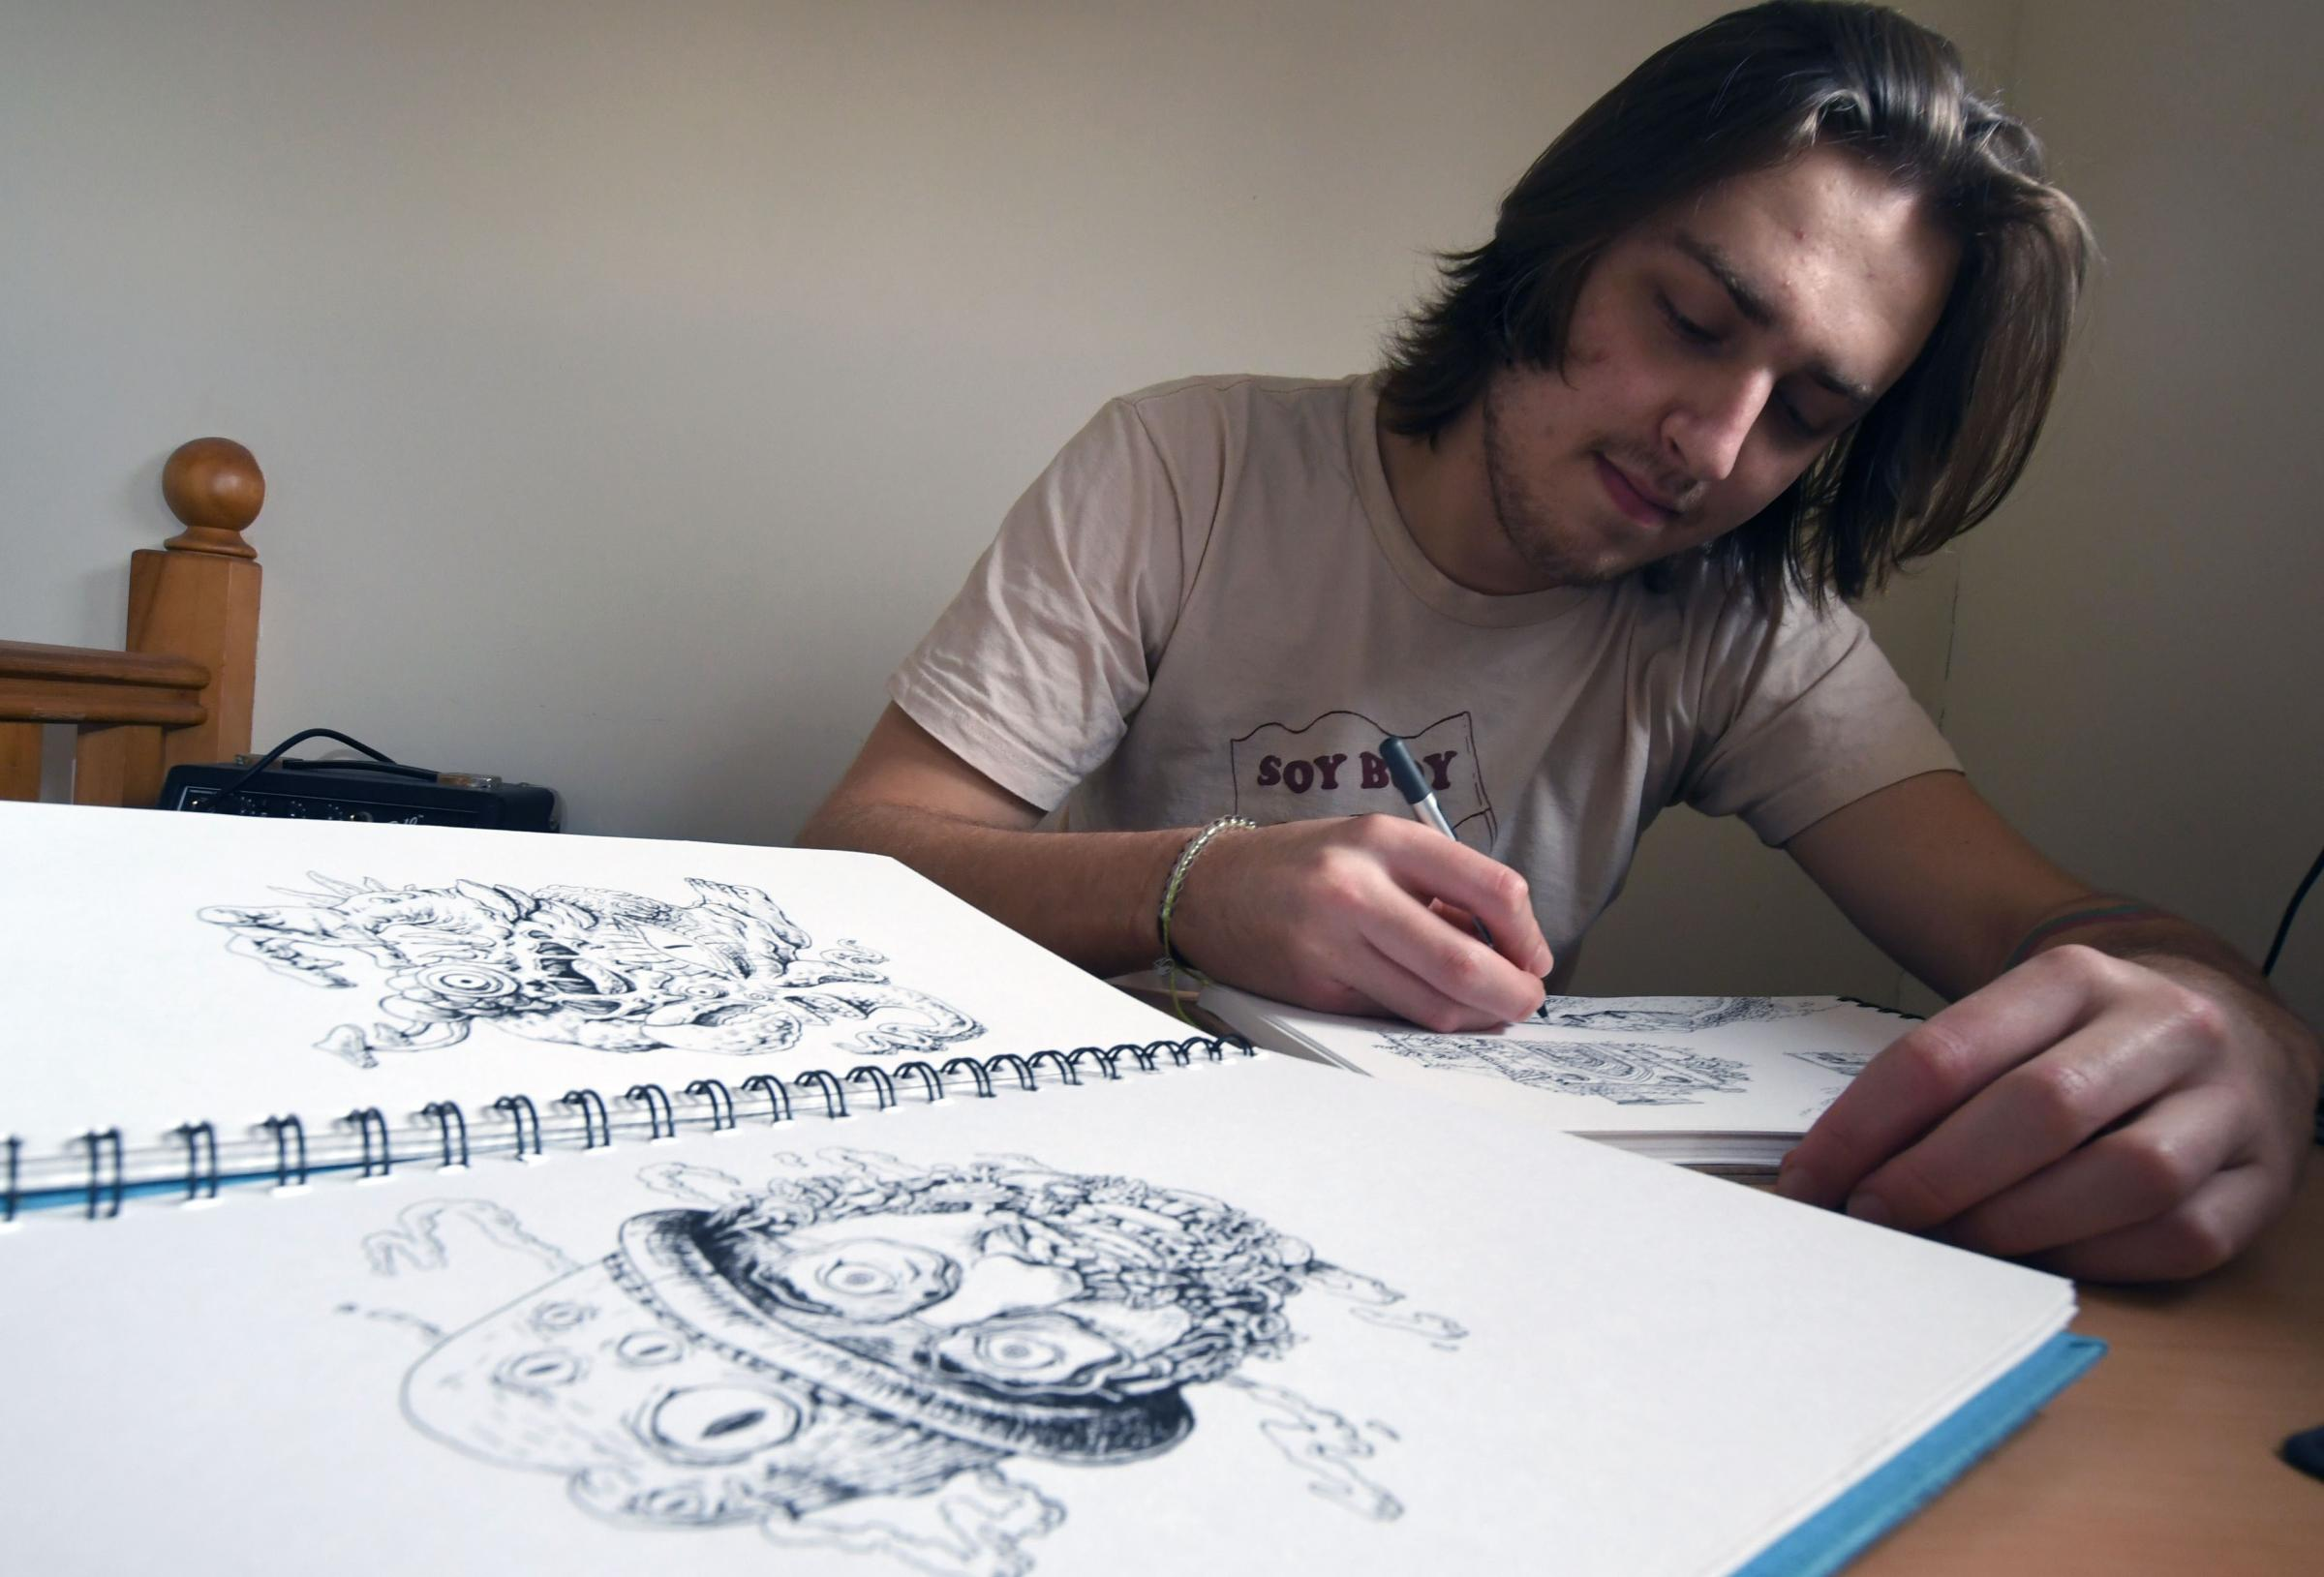 In the studio with 'Eaten Alive' artist Chris Monaghan